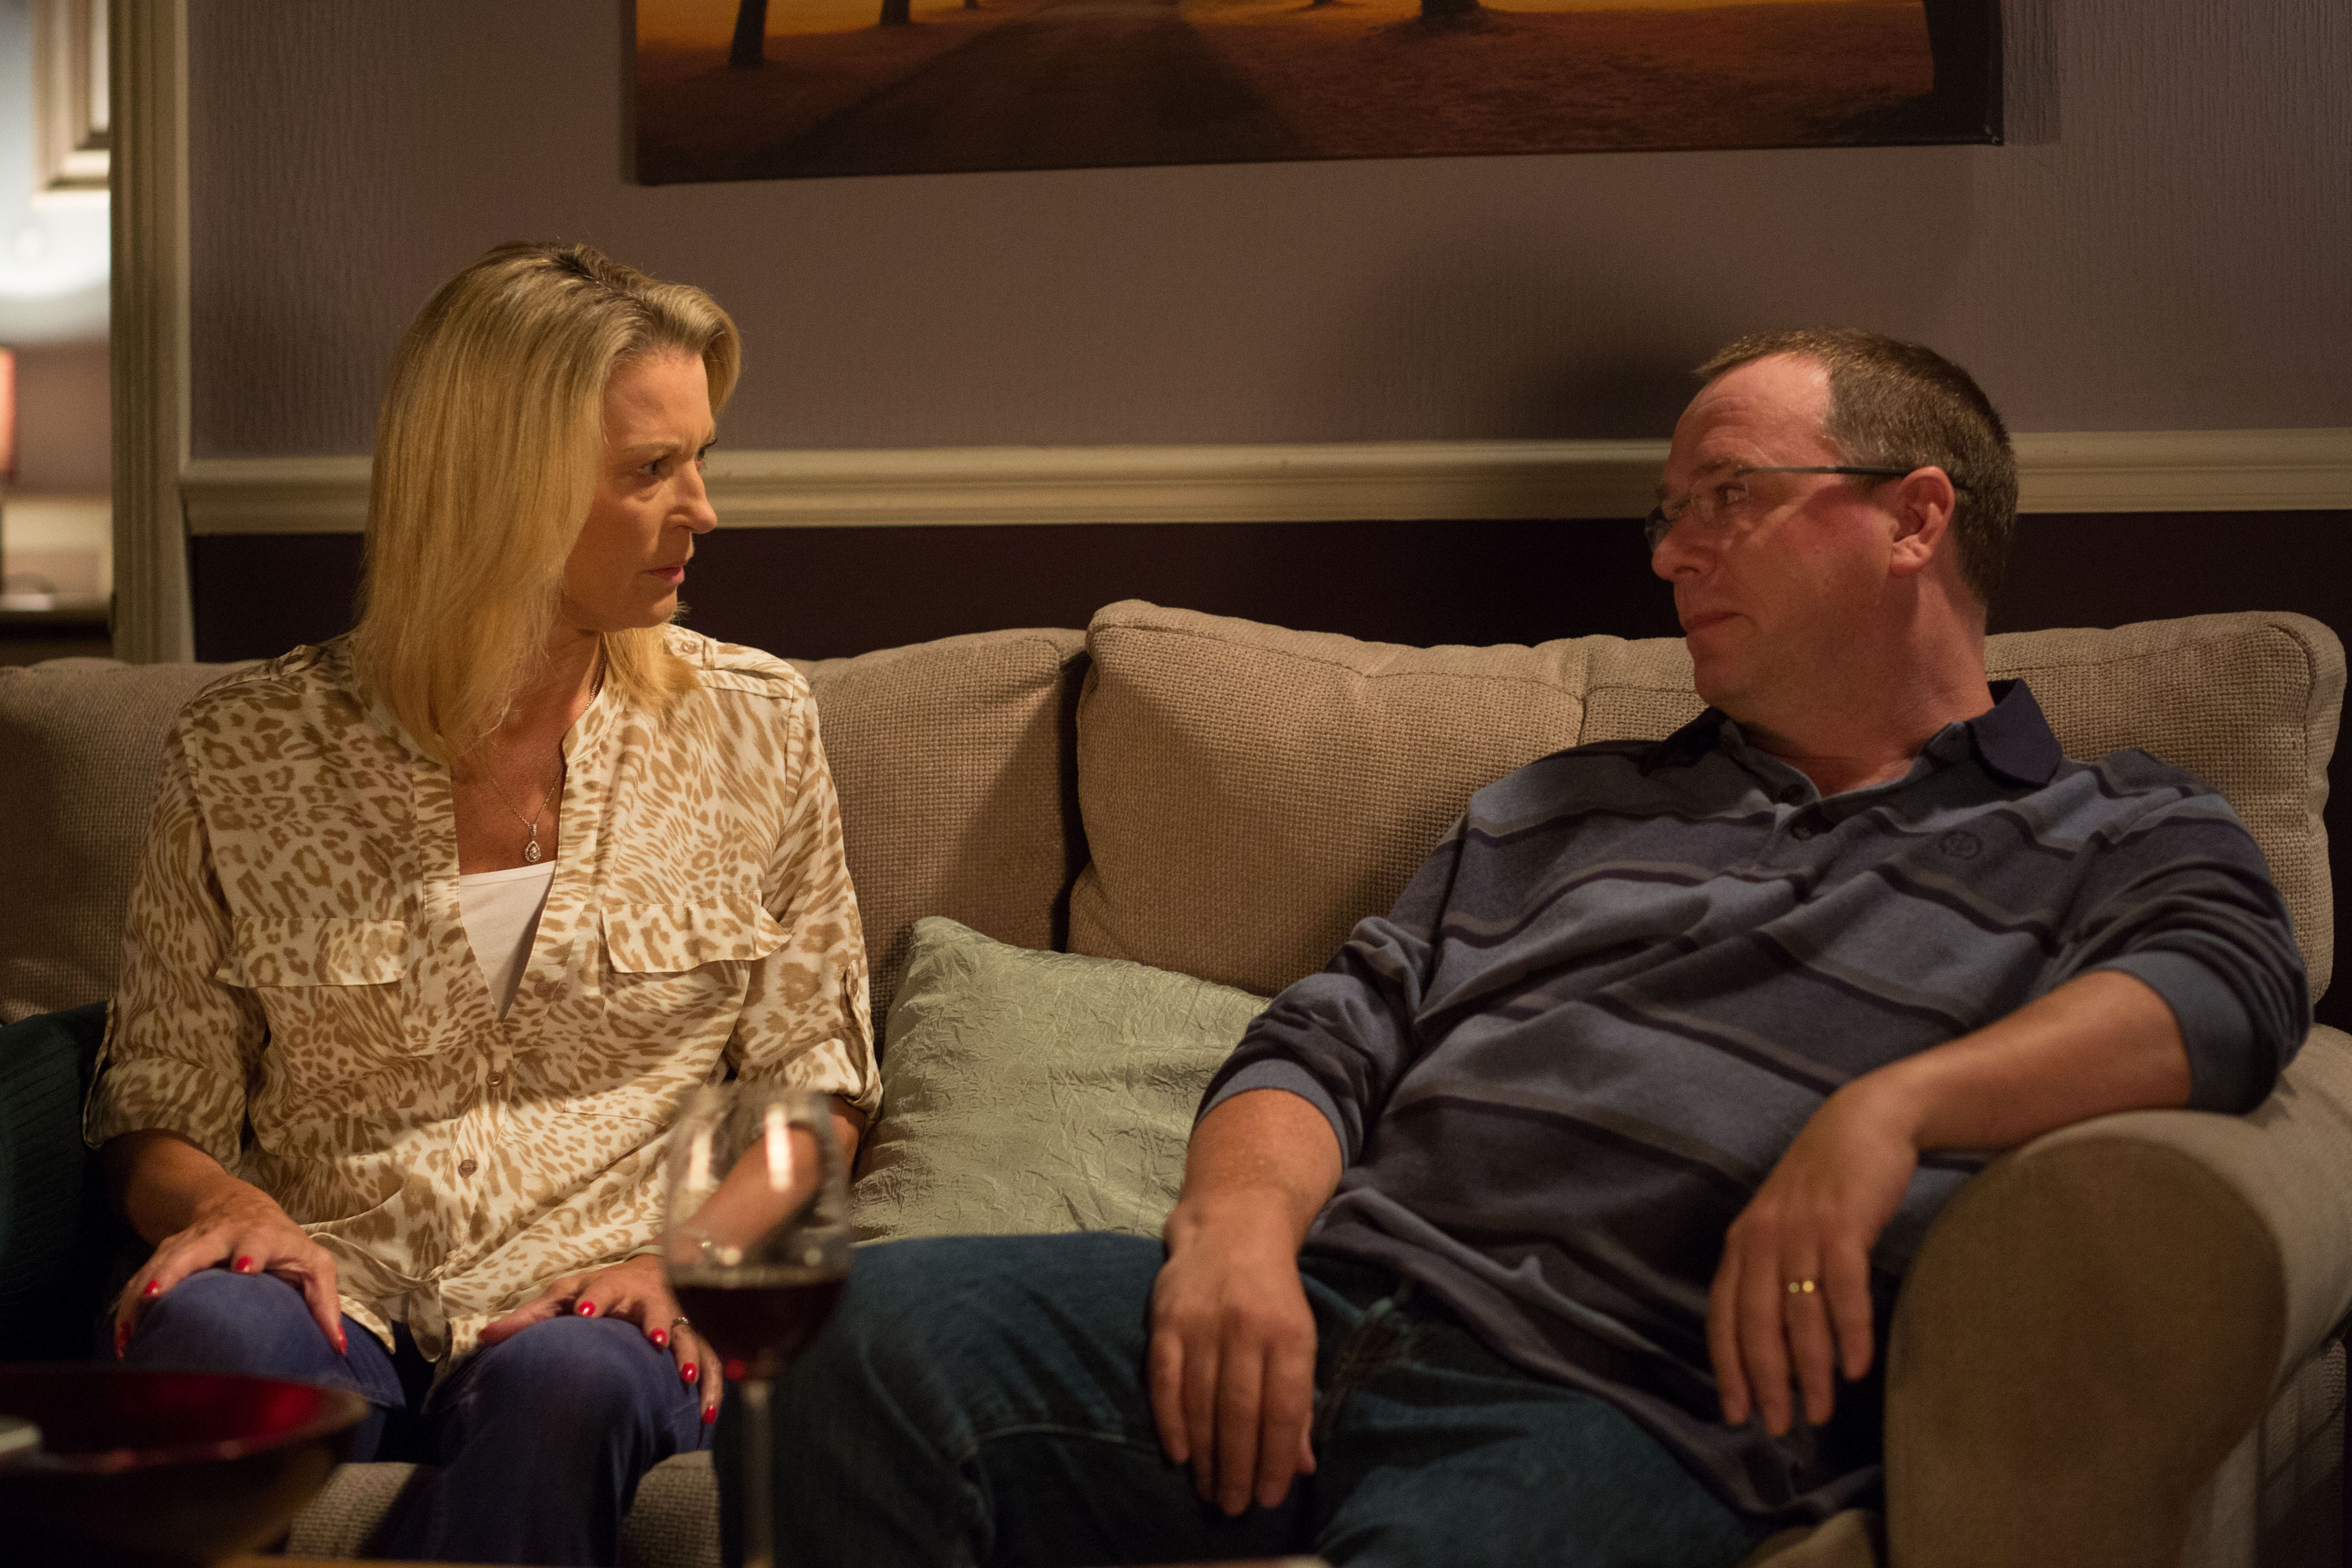 WARNING: Embargoed for publication until 00:00:01 on 13/10/2015 - Programme Name: EastEnders - TX: 20/10/2015 - Episode: 5158 (No. n/a) - Picture Shows: ***FORTNIGHTLIES PLEASE DO NOT USE (SOAP LIFE and ALL ABOUT SOAP) Ian drops a bombshell on Kathy. Kathy Sullivan (GILLIAN TAYLFORTH), Ian Beale (ADAM WOODYATT) - (C) BBC - Photographer: Jack Barnes